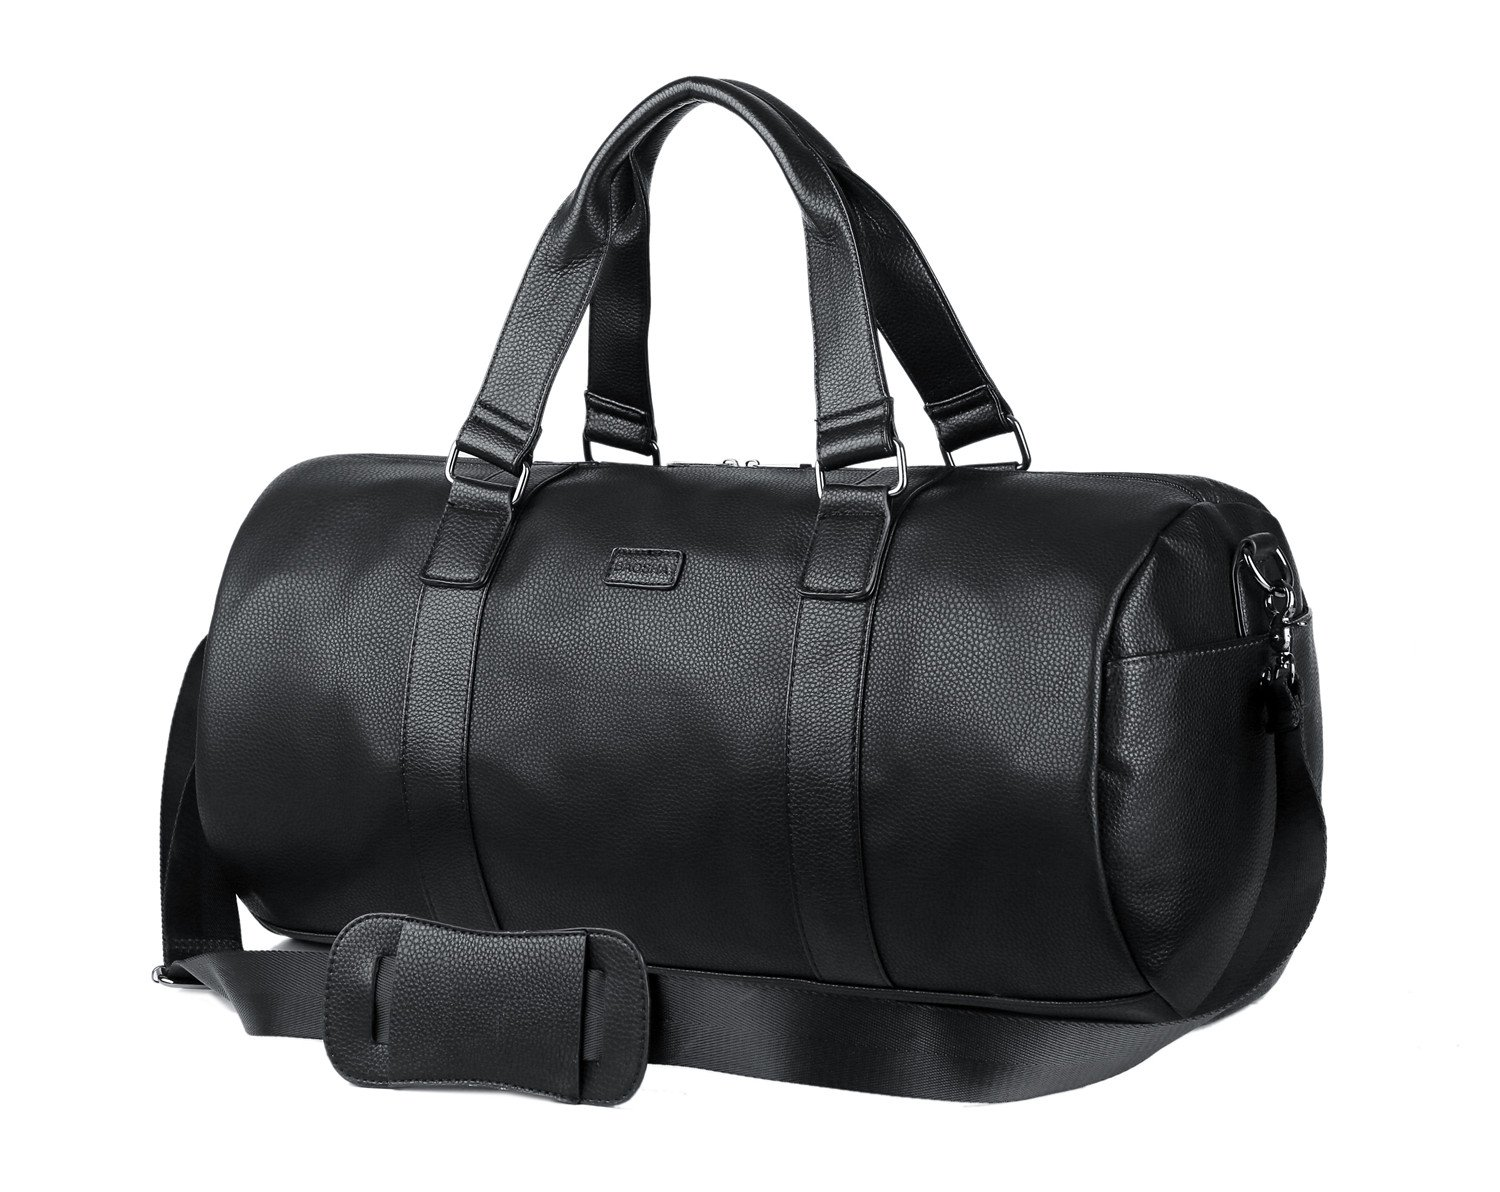 BAOSHA HB-02 Men PU Leather Handbag Totes Travel Weekender Duffel Bag Black   Amazon.co.uk  Luggage 97e2725dcf476